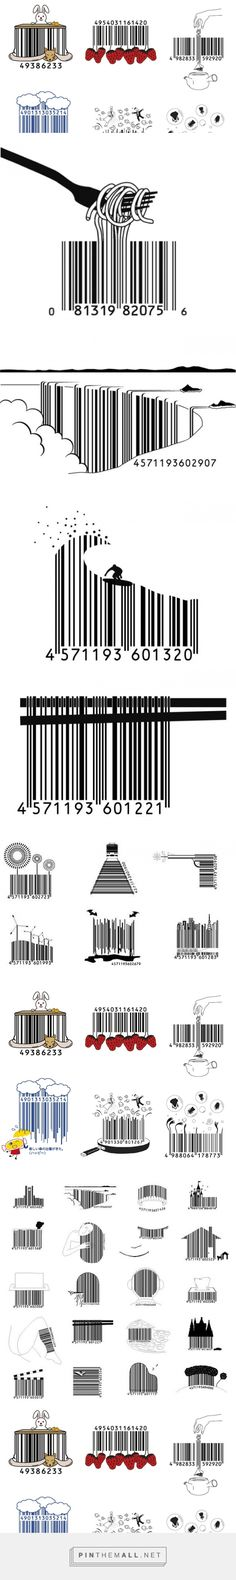 UCreative.com - These Japanese Barcodes Are So Kawaii! | UCreative.com - created on 2015-10-08 13:46:05